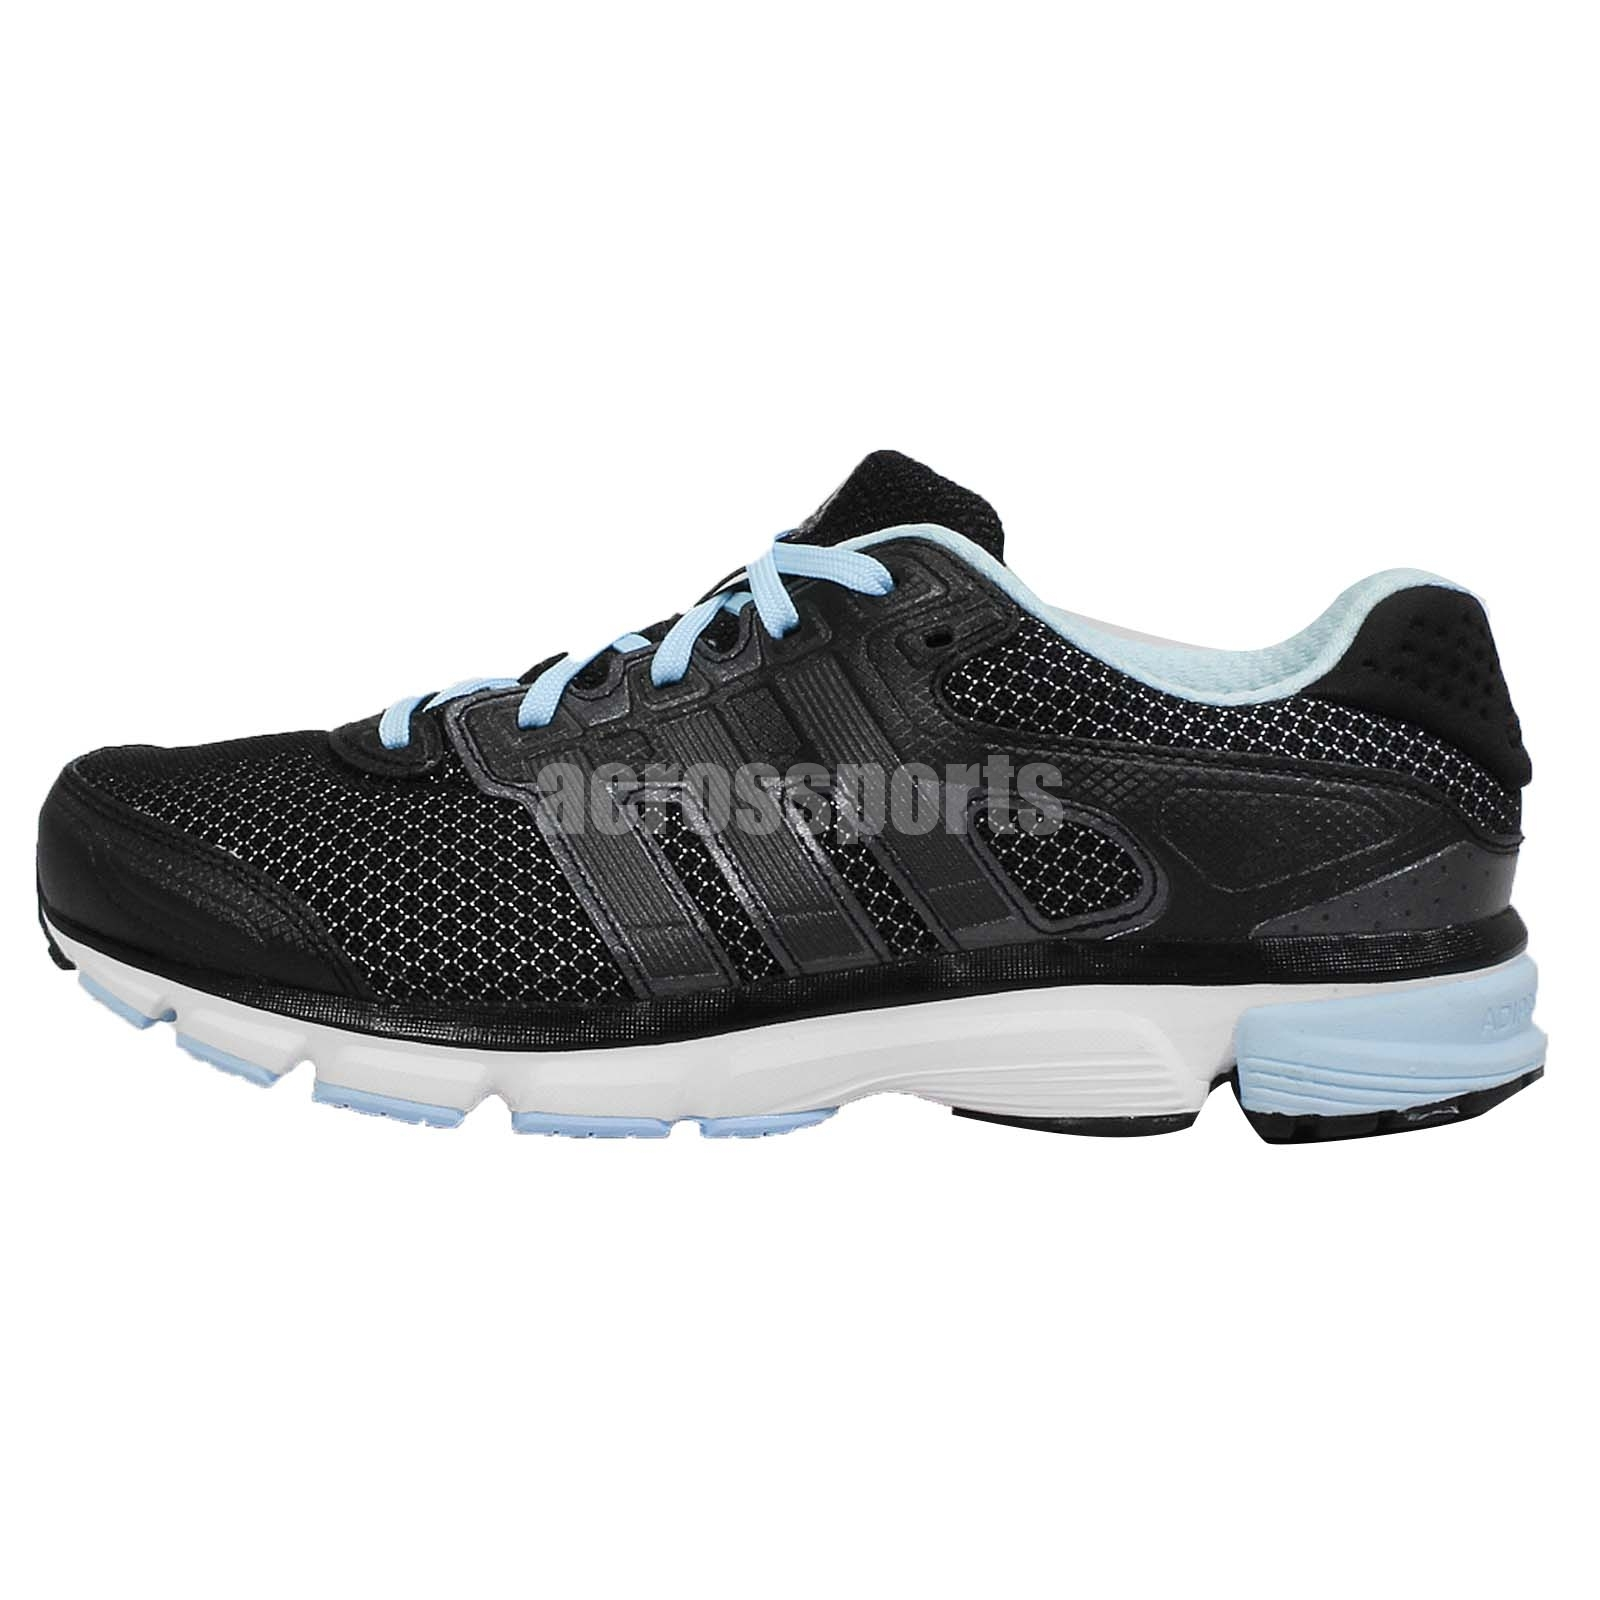 Adidas Nova Cushion W Black Blue Womens Running Shoes